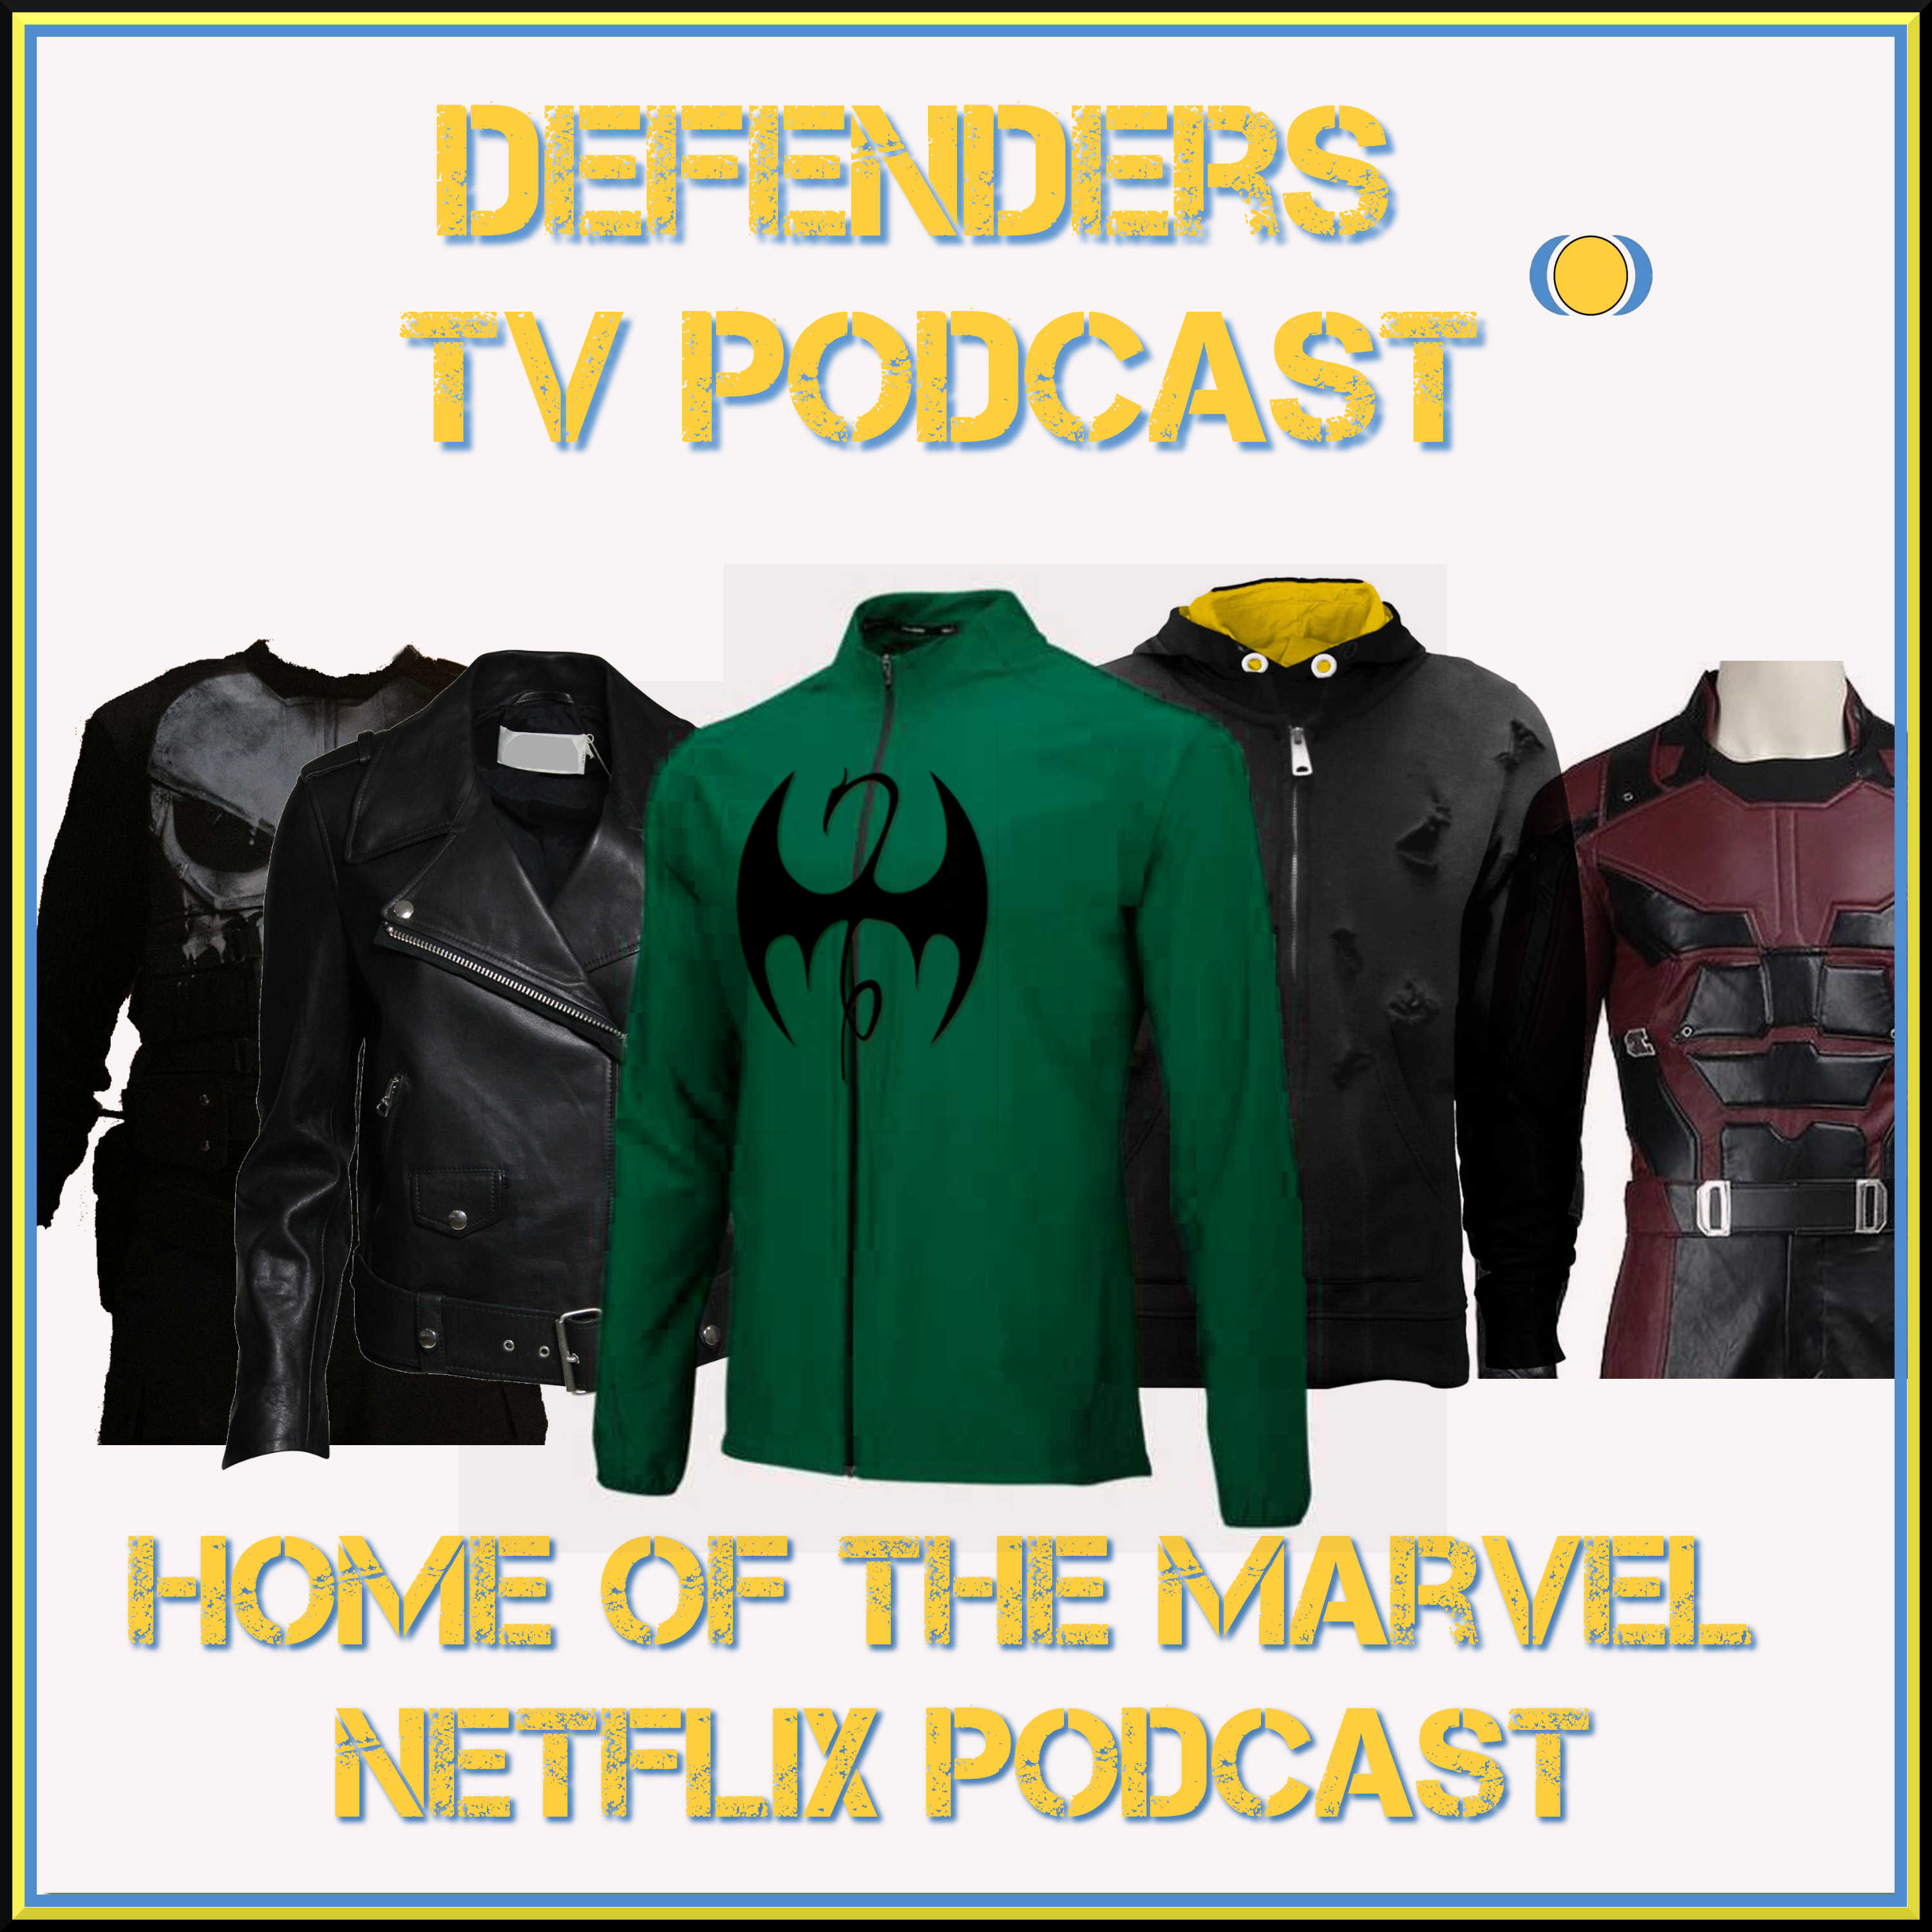 Defenders TV Podcast. The home of Punisher, Doctor Strange, Jessica Jones, Daredevil, Luke Cage, and Iron Fist reviews